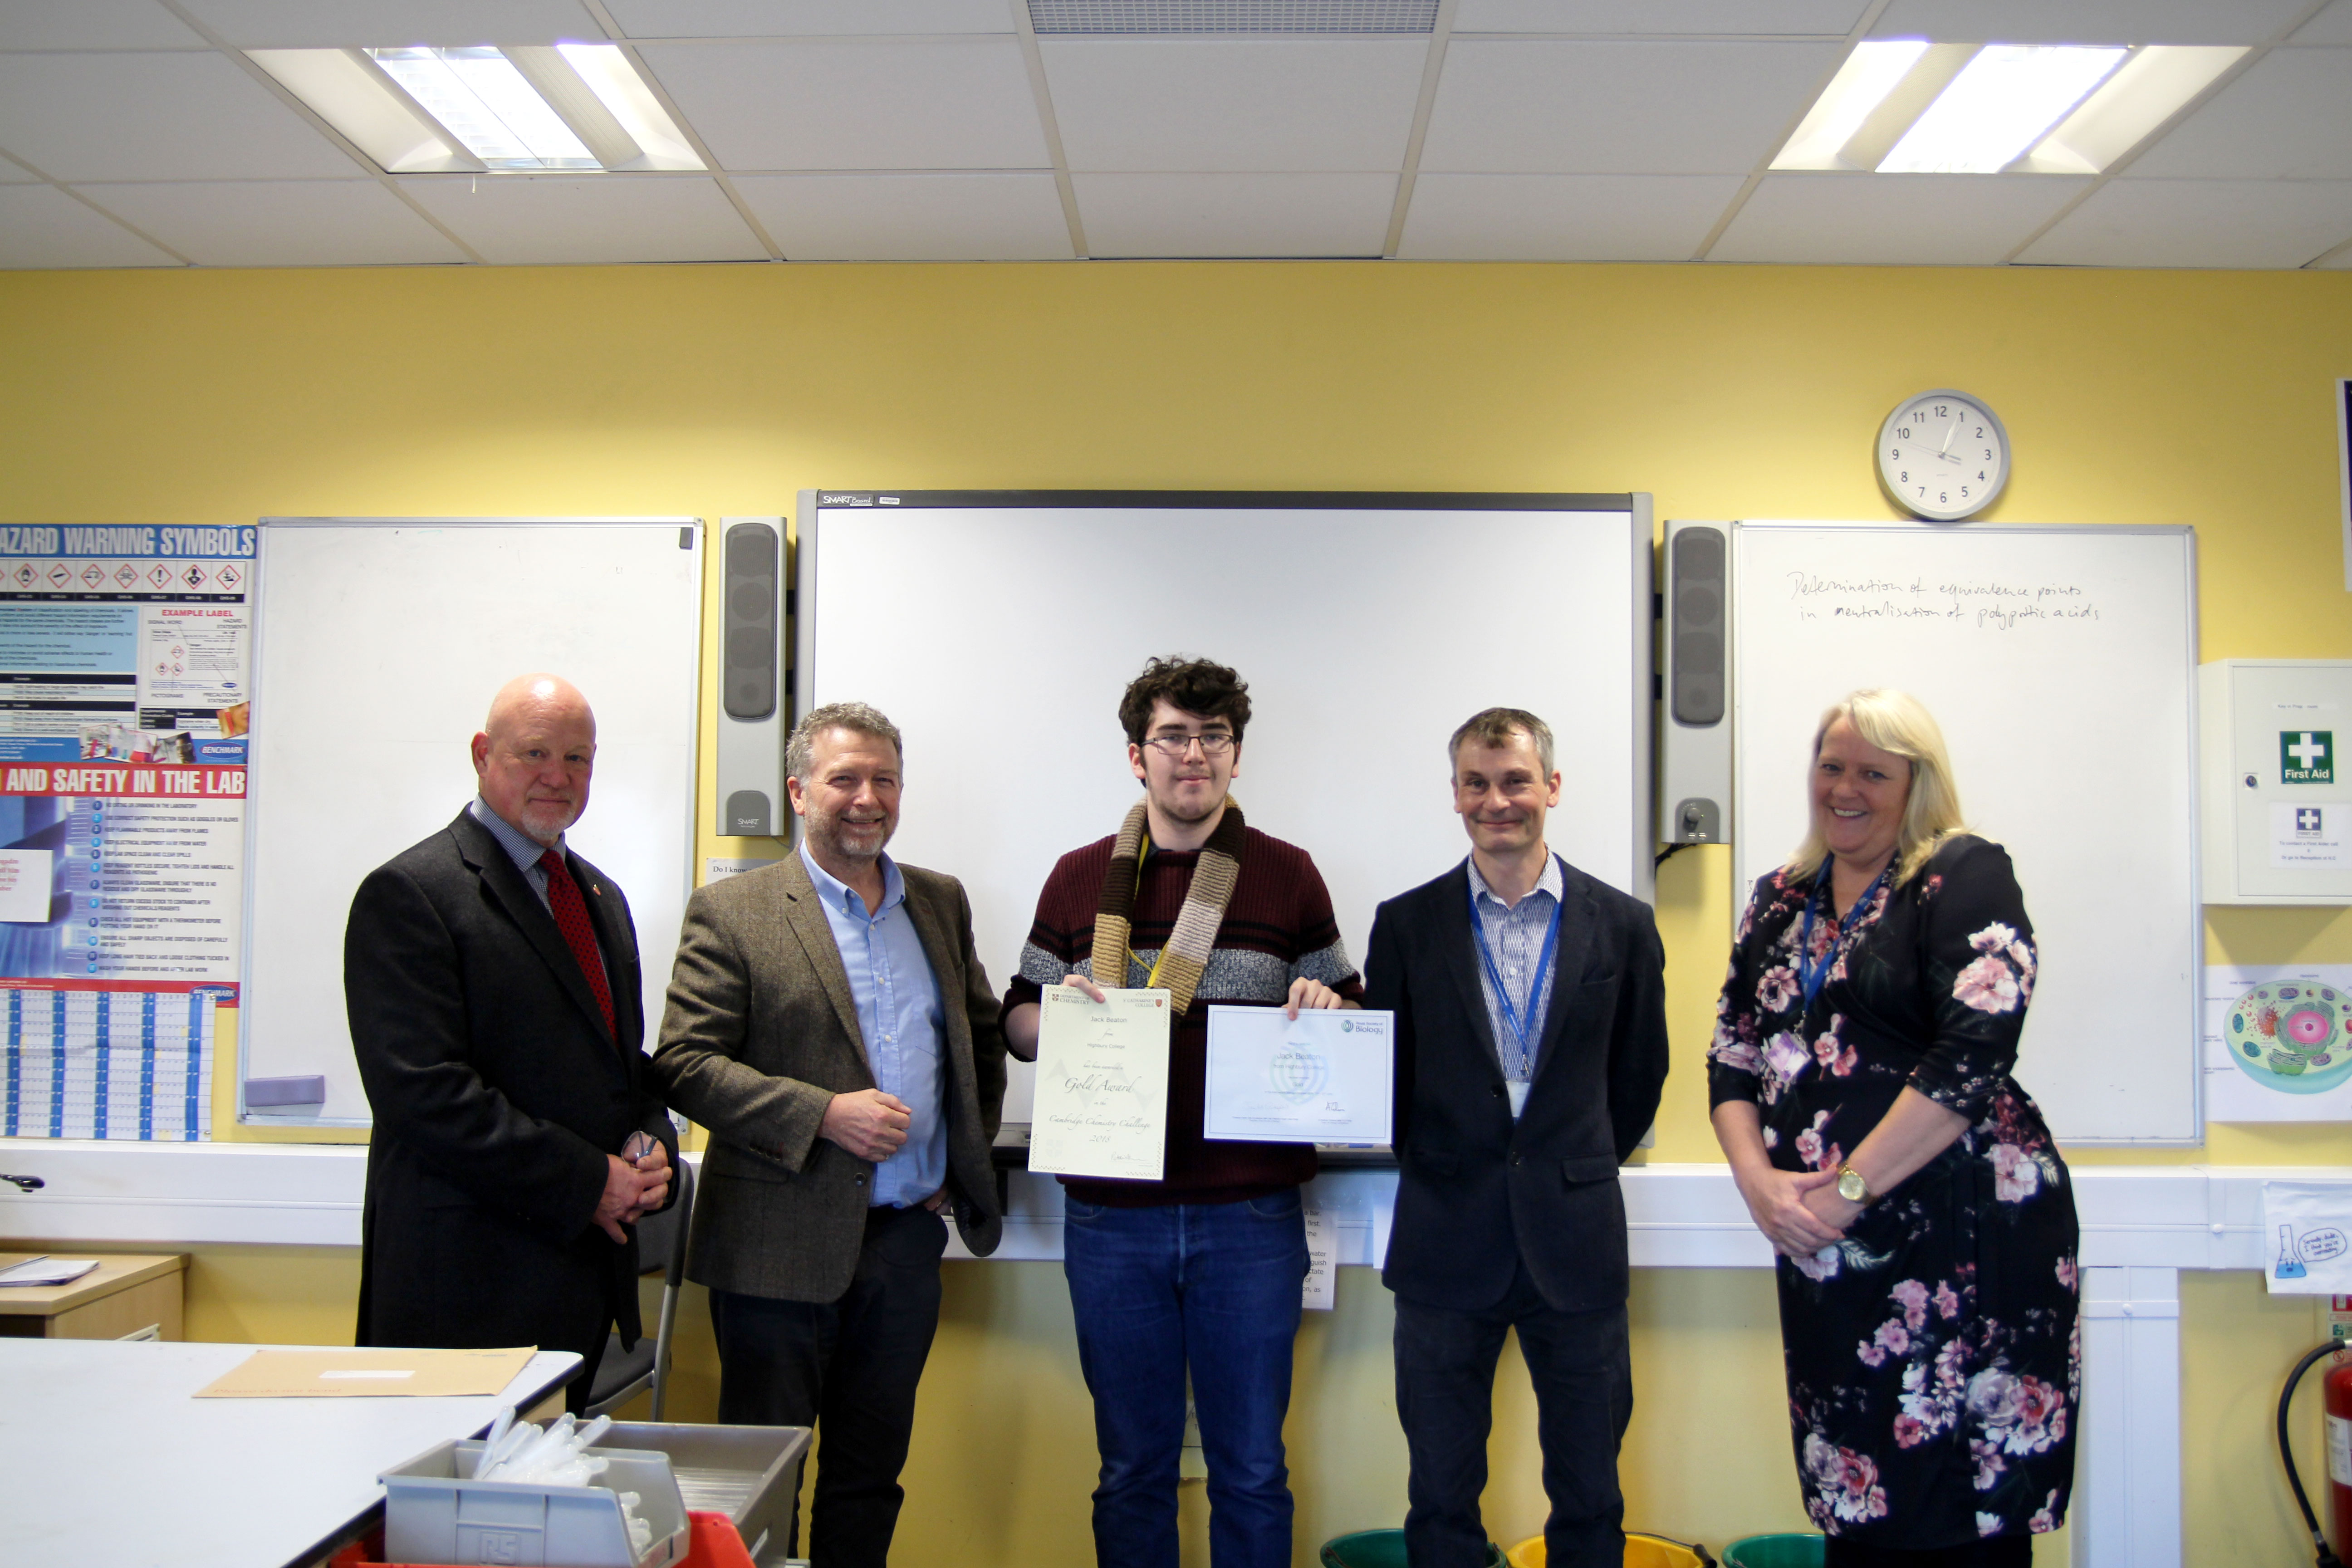 Highbury A Level student Jack Beaton with his two gold science awards